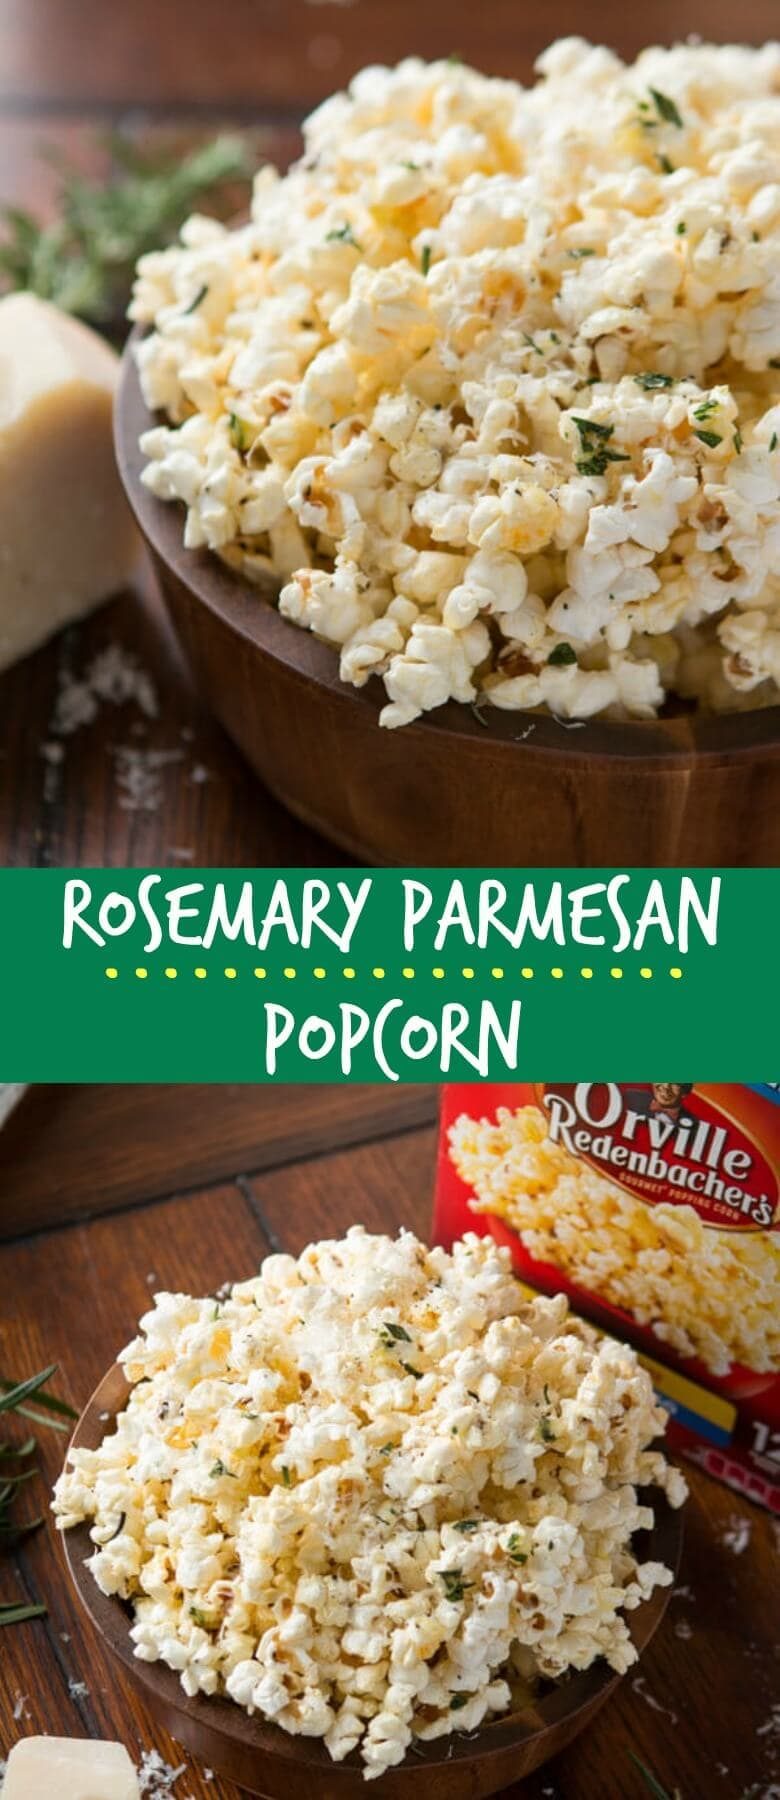 Everyone goes nuts for our Marshmallow Popcorn so it was high time to find the best savory popcorn recipe, and this rosemary parmesan popcorn is it!